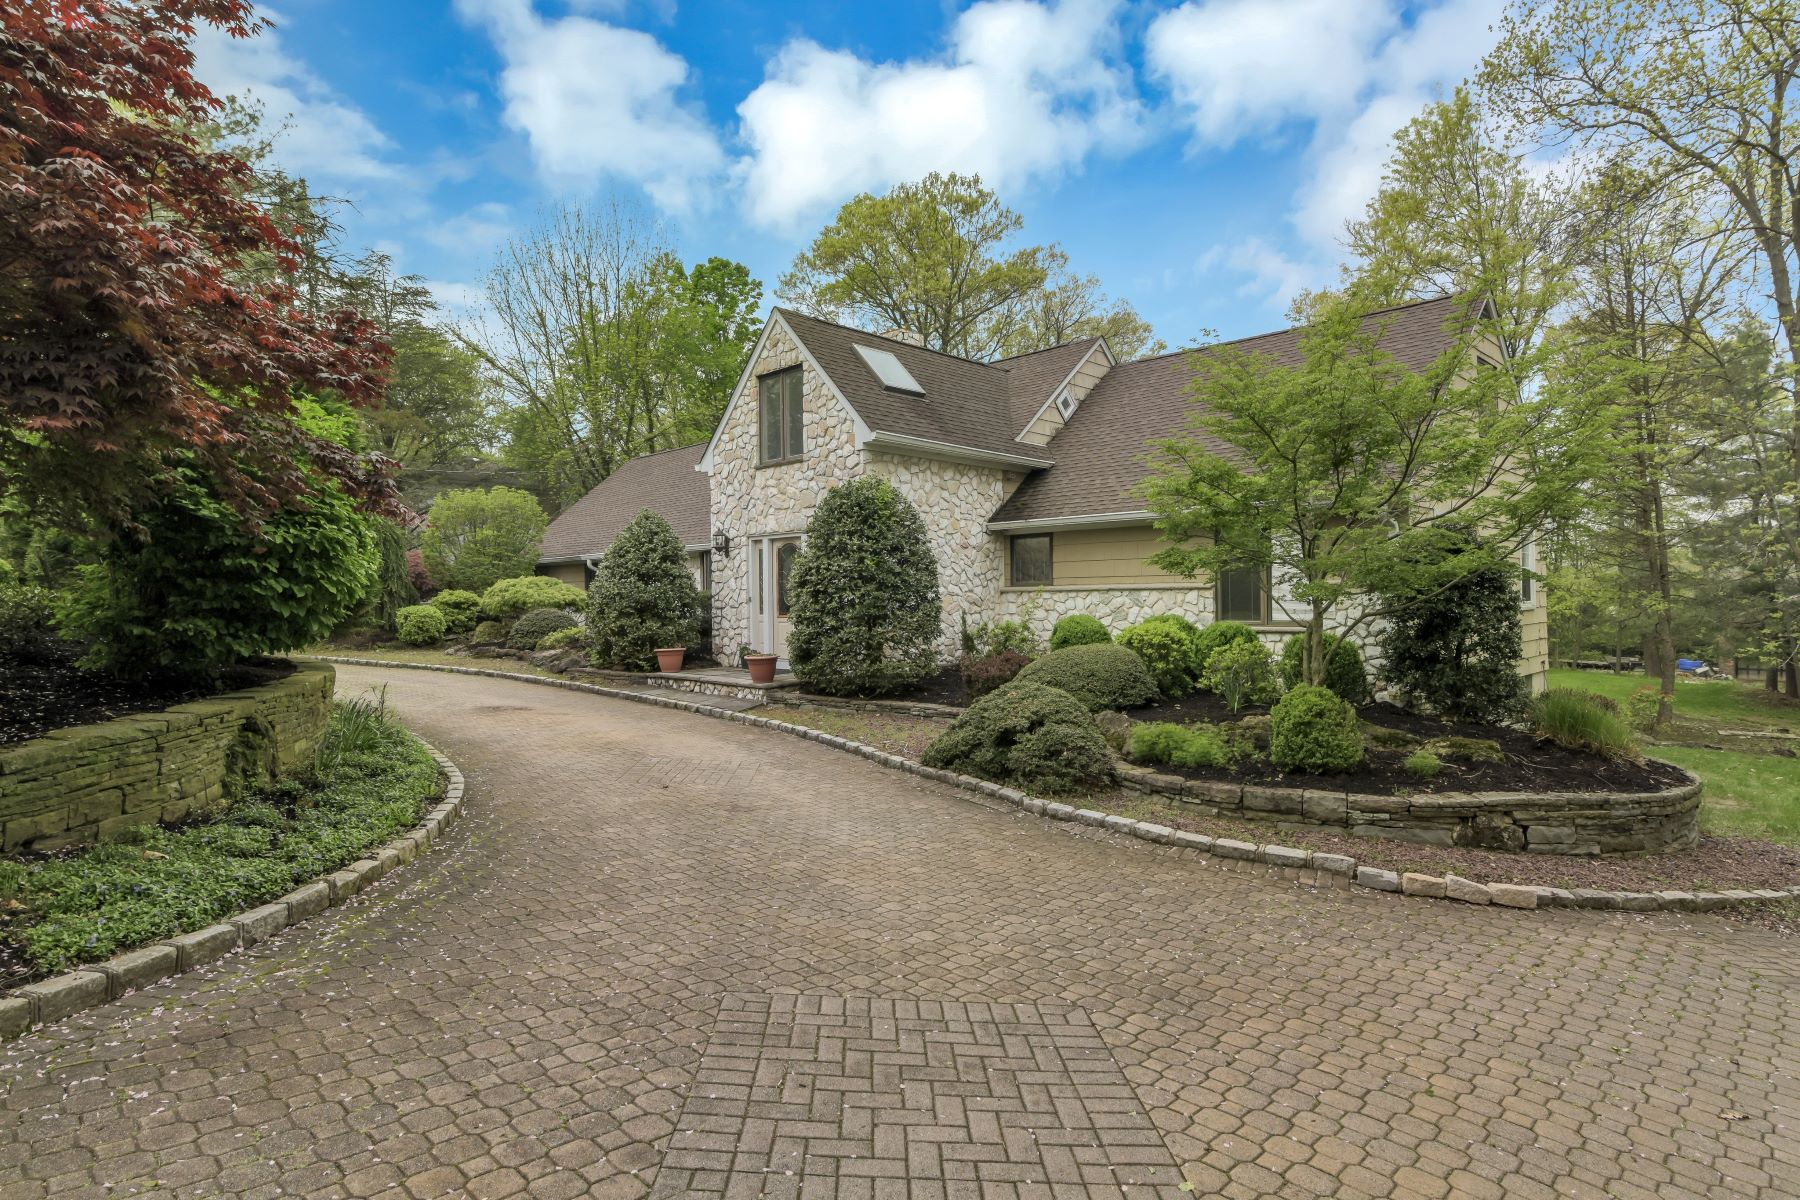 Single Family Homes for Sale at Stately Stone Front Expanded Ranch 141 Summit Road Florham Park, New Jersey 07932 United States